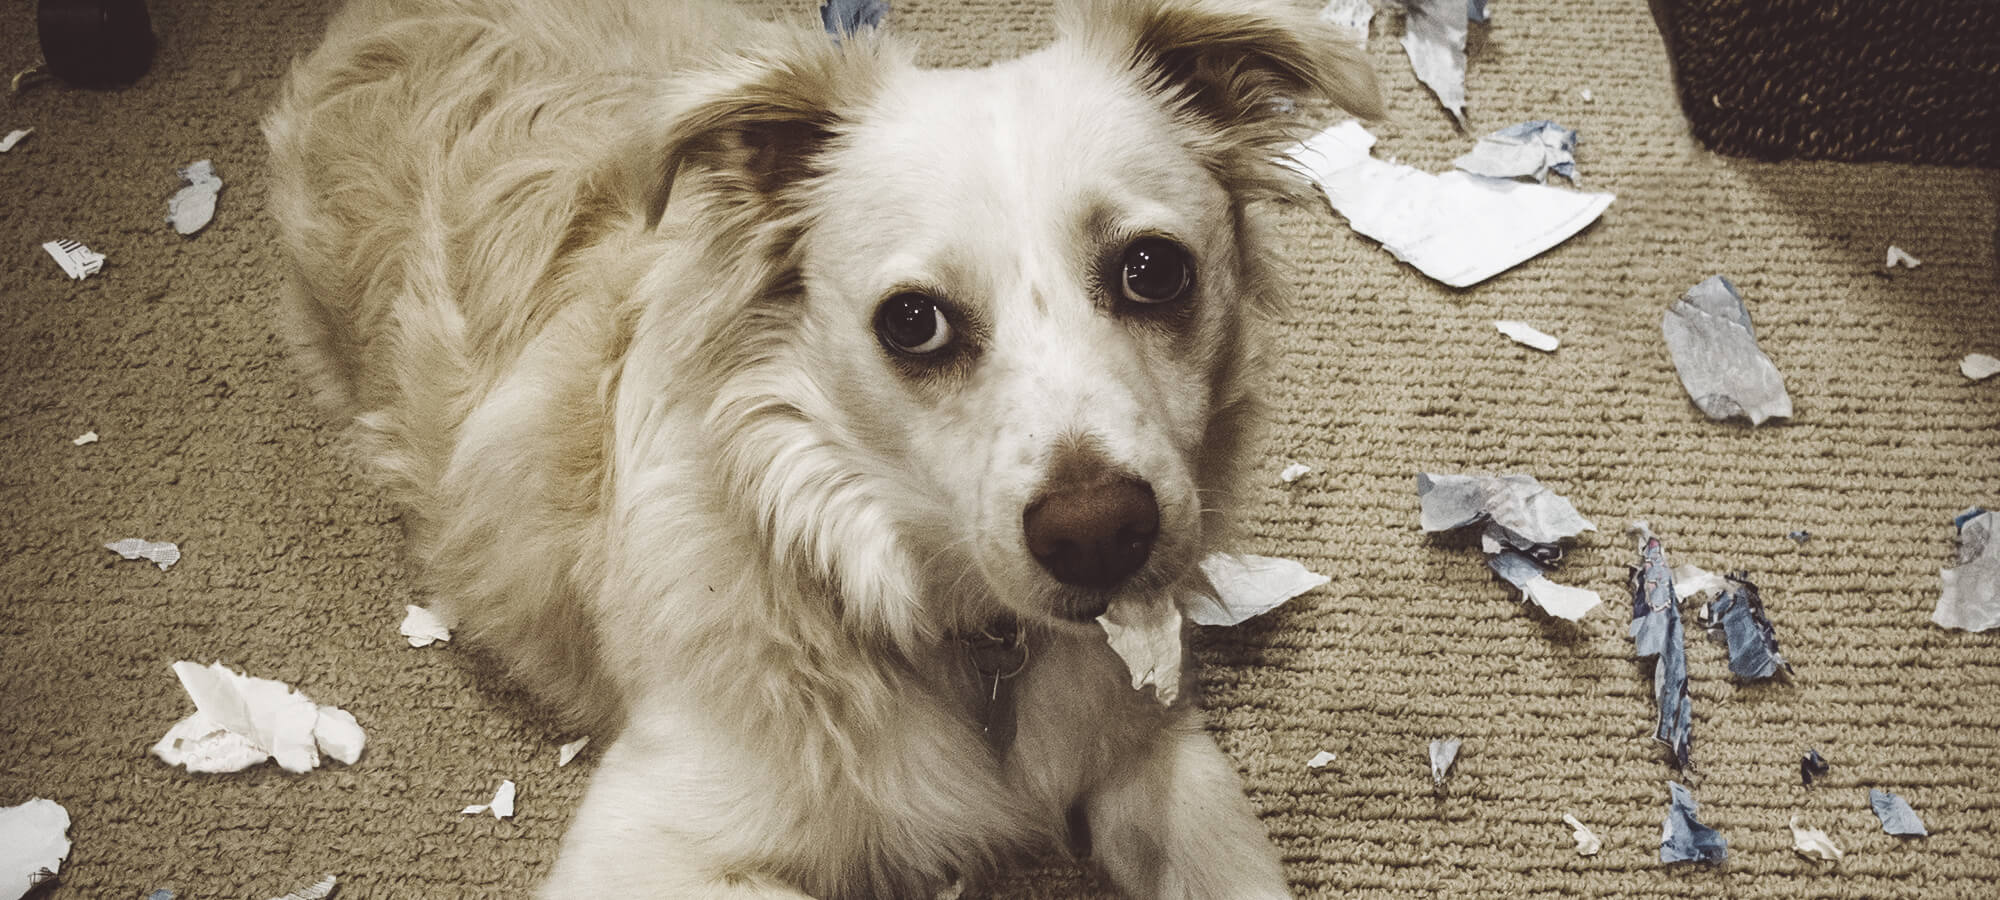 The dog ate your mail?